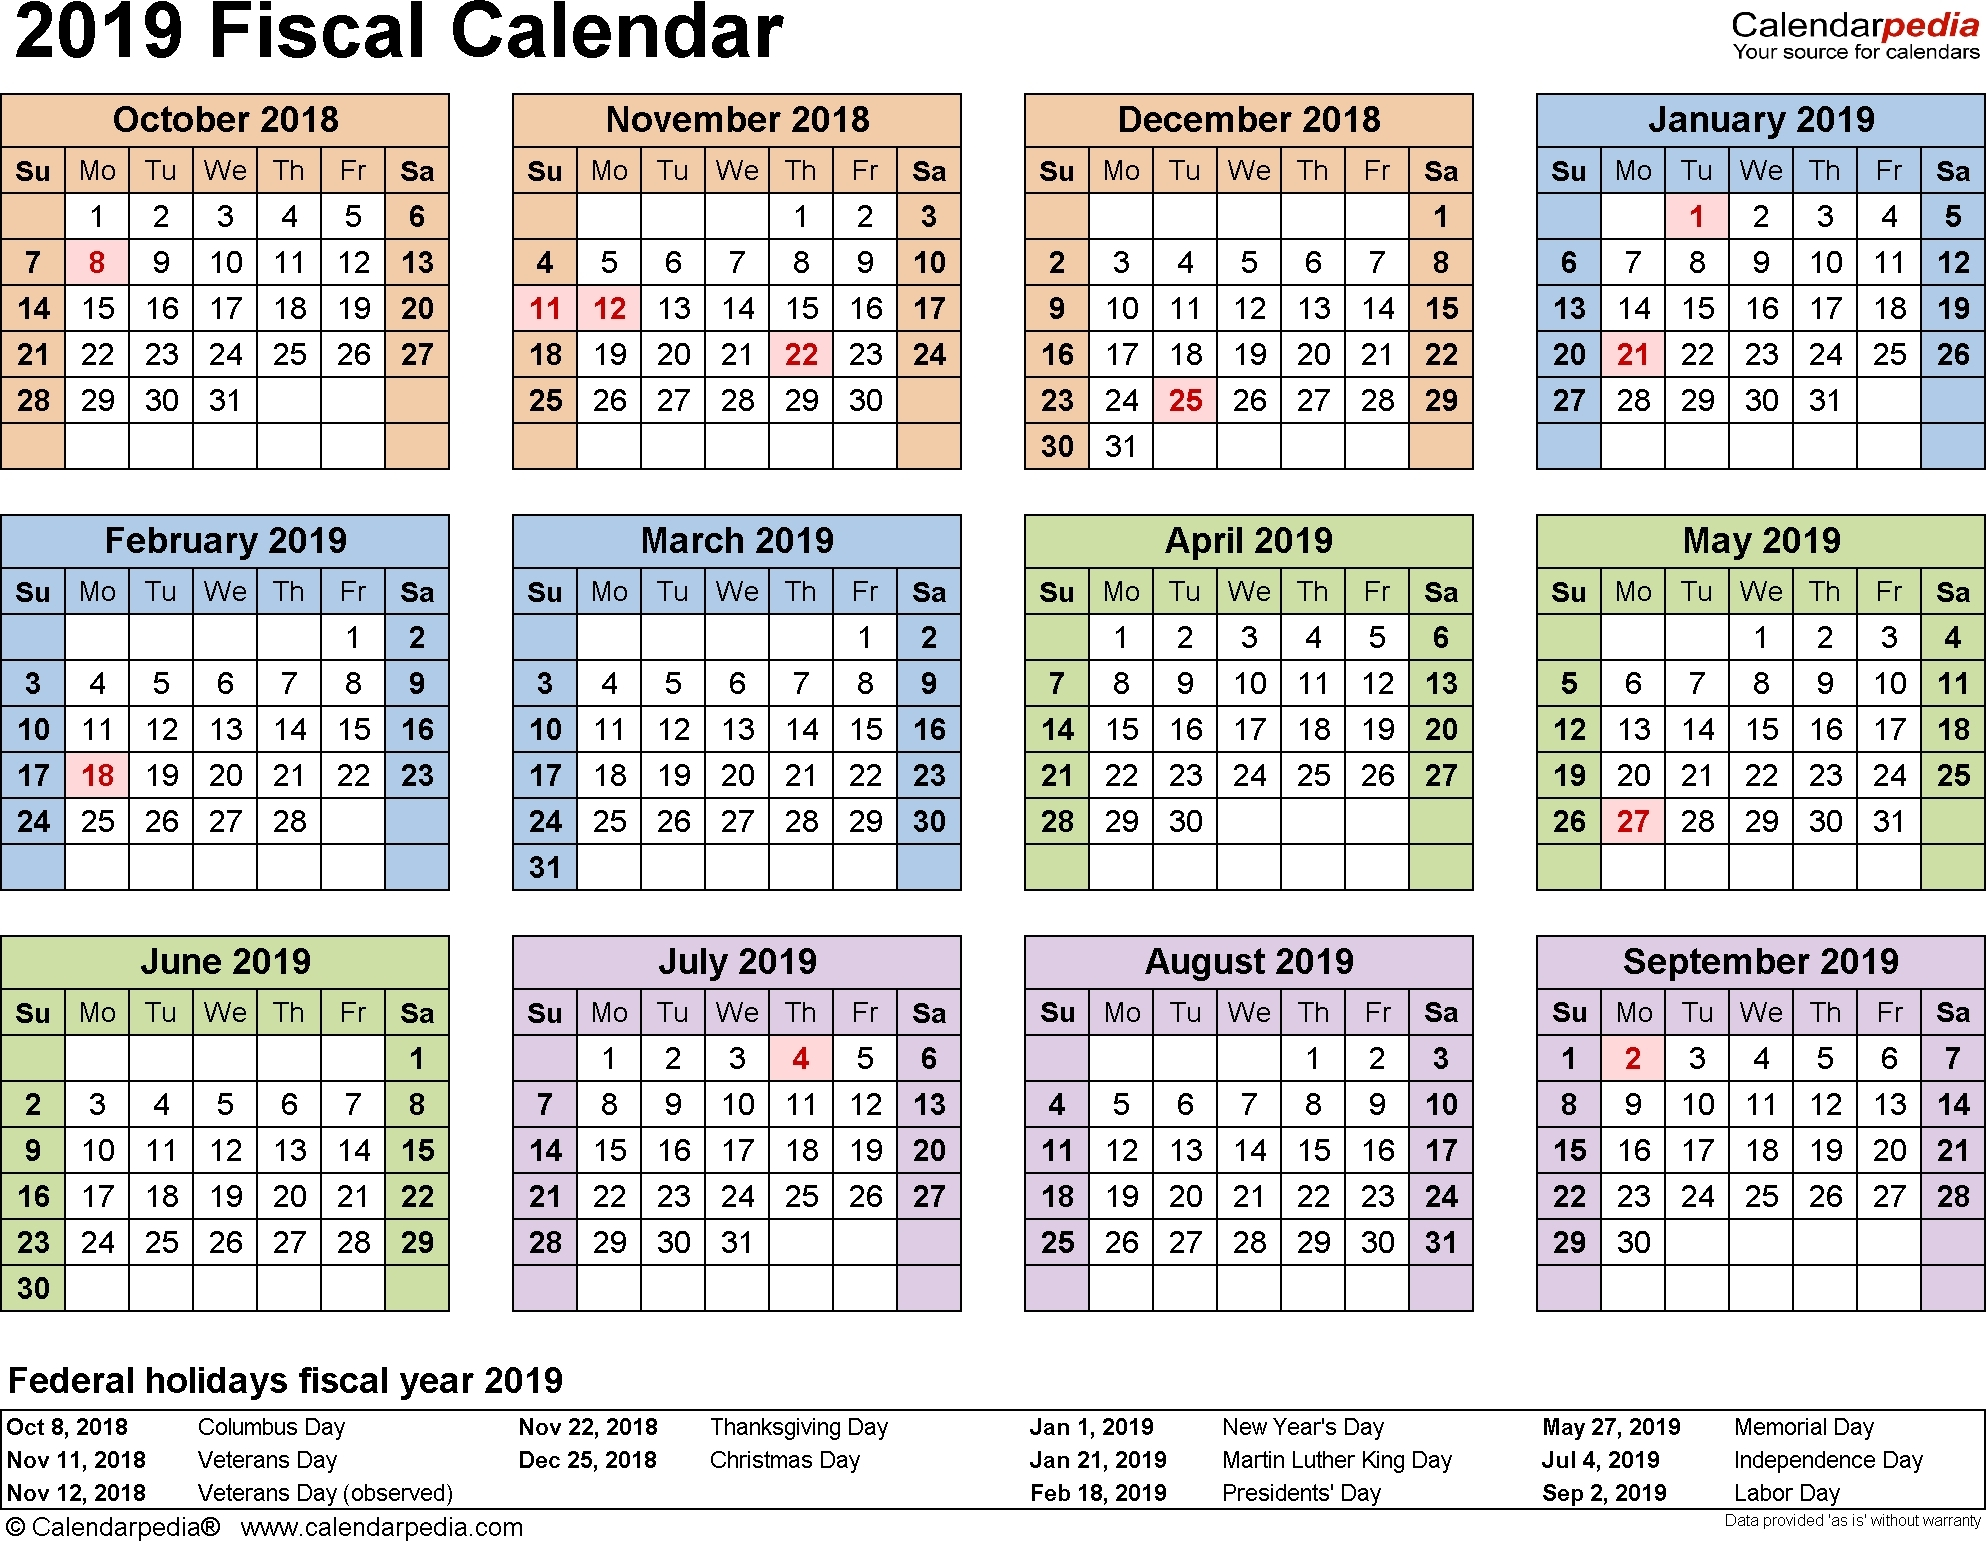 2019-2020 Calendar Financial Week Numbers - Calendar intended for Financial Calendare With Weeks Numbers